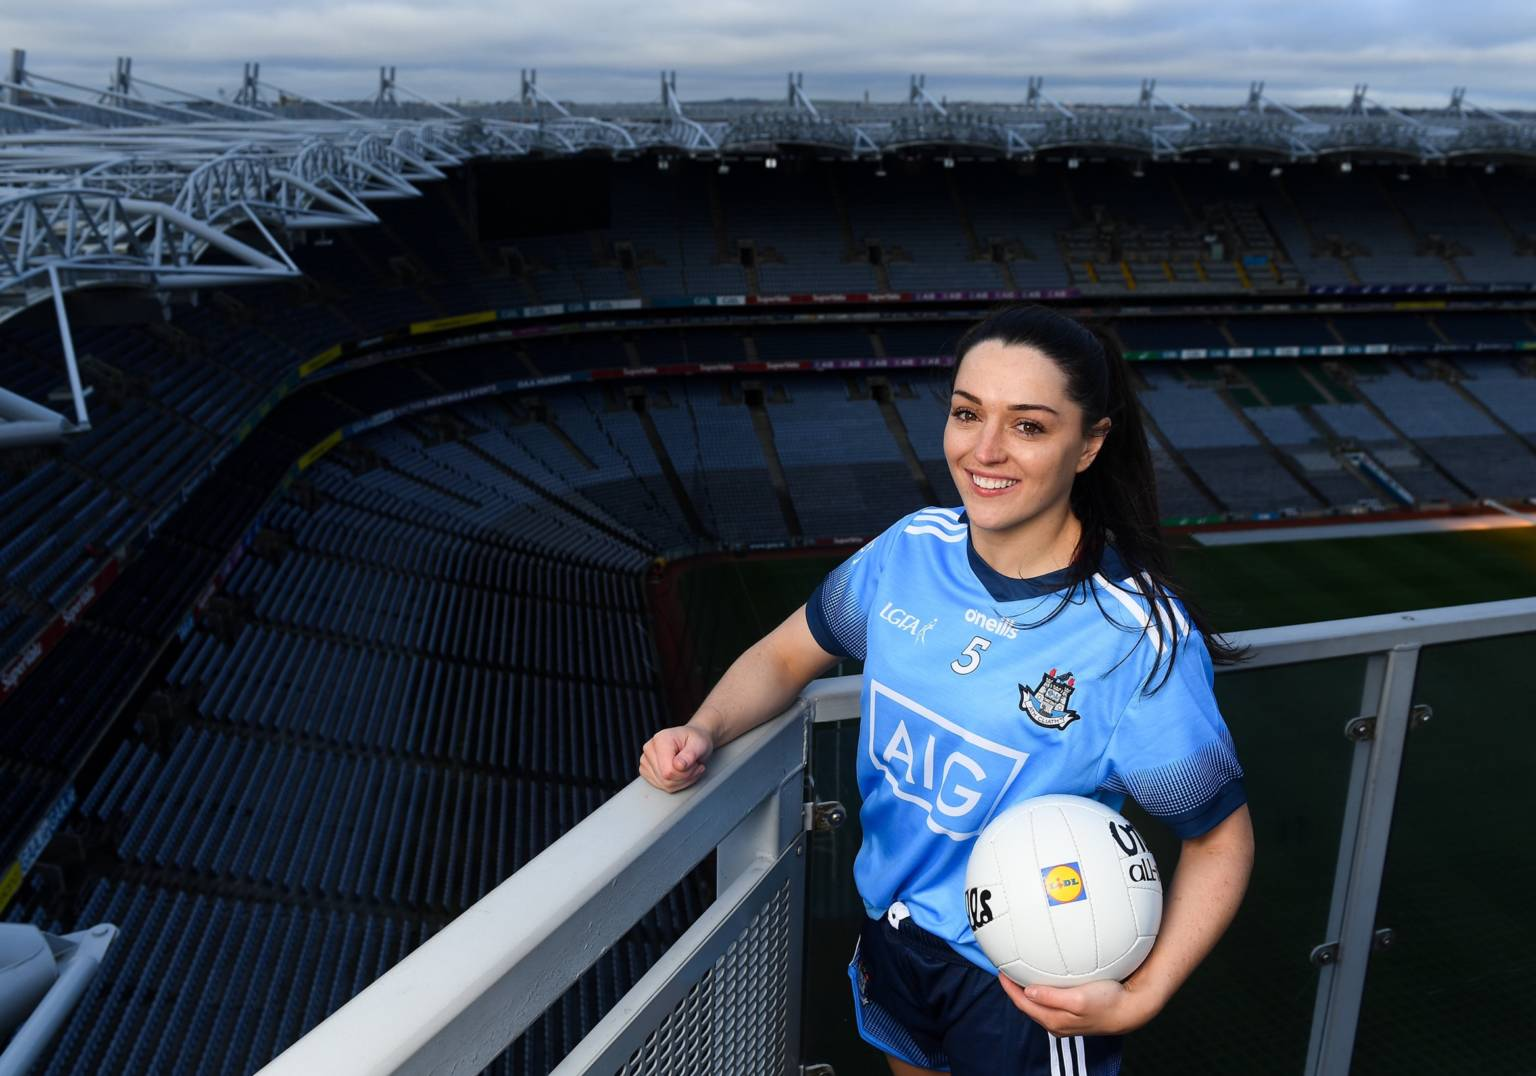 Dublin ladies footballers Sinead Goldrick pictured holding a ball on the Croke Park Sky walk, Goldrick is looking forward to getting back out on a pitch when lockdown restrictions are lifted.